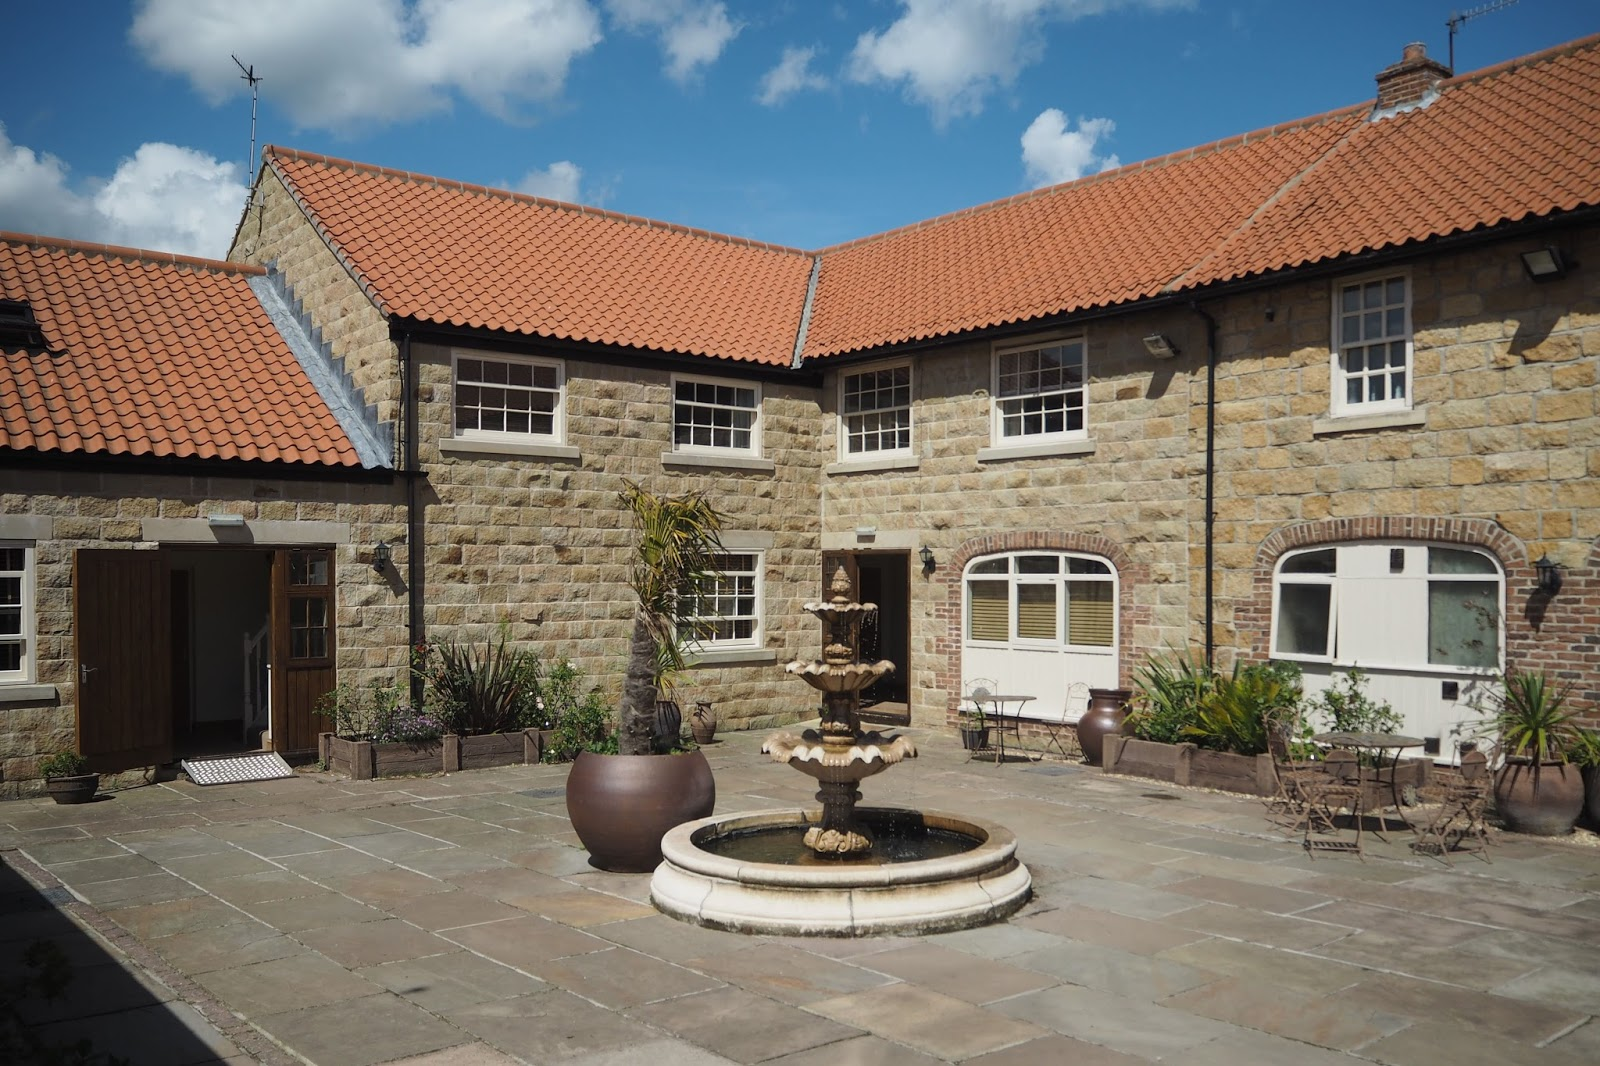 Outdoor courtyard Ox Pasture Hall Country Hotel, Scarborough, Yorkshire, romantic hotel near beach in Scarborough